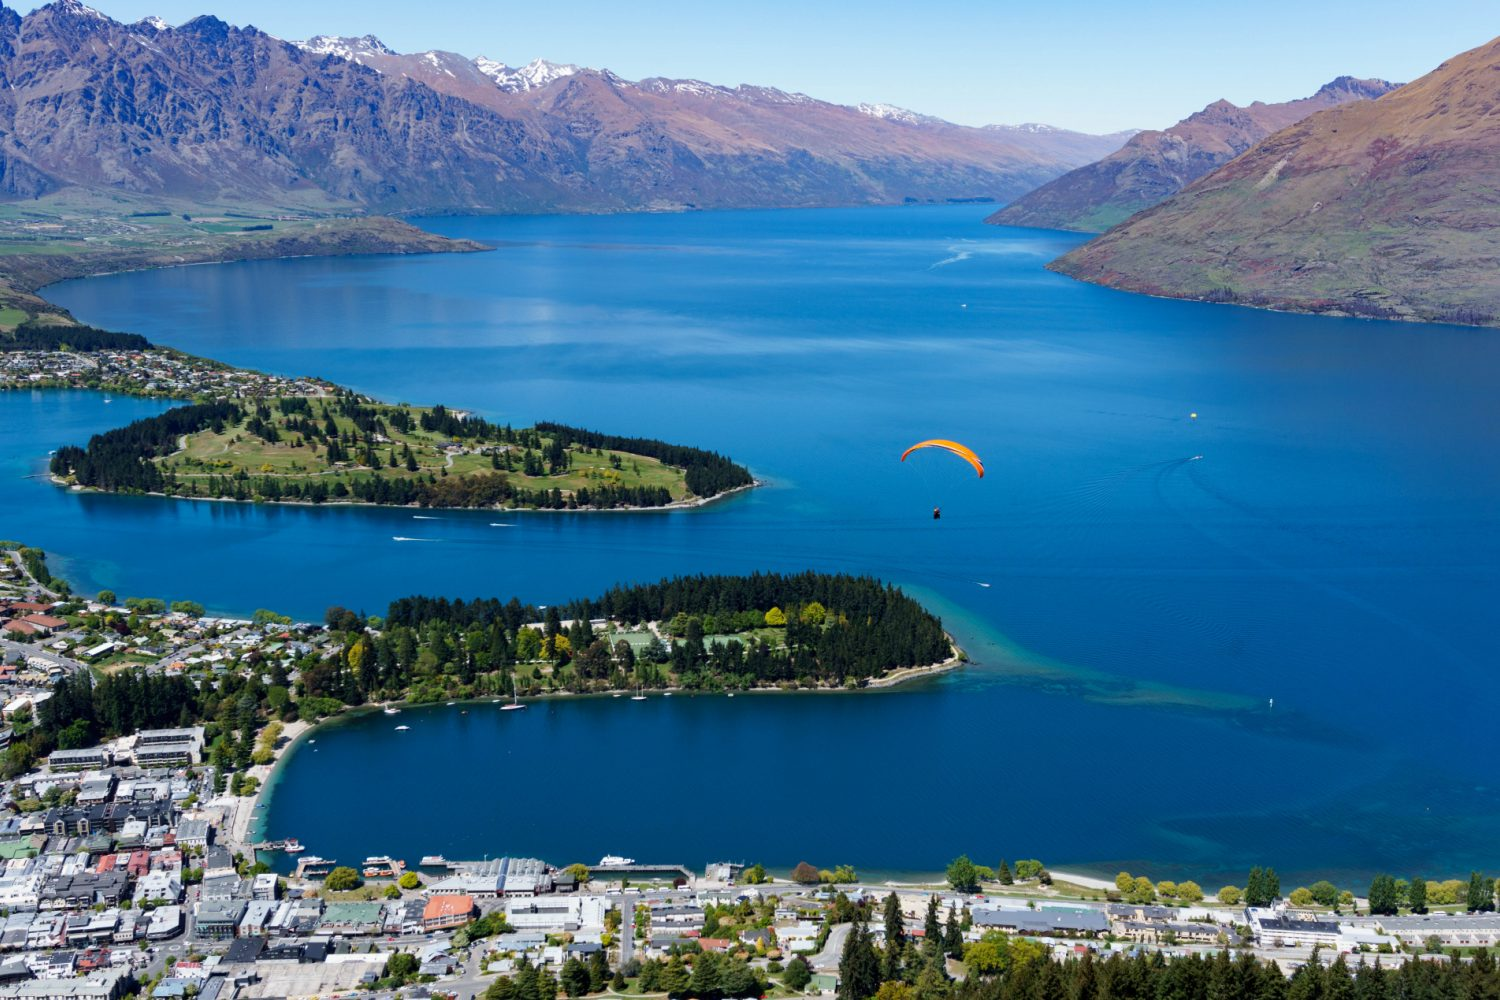 Neuseeland: Queenstown am Lake Wakatipu